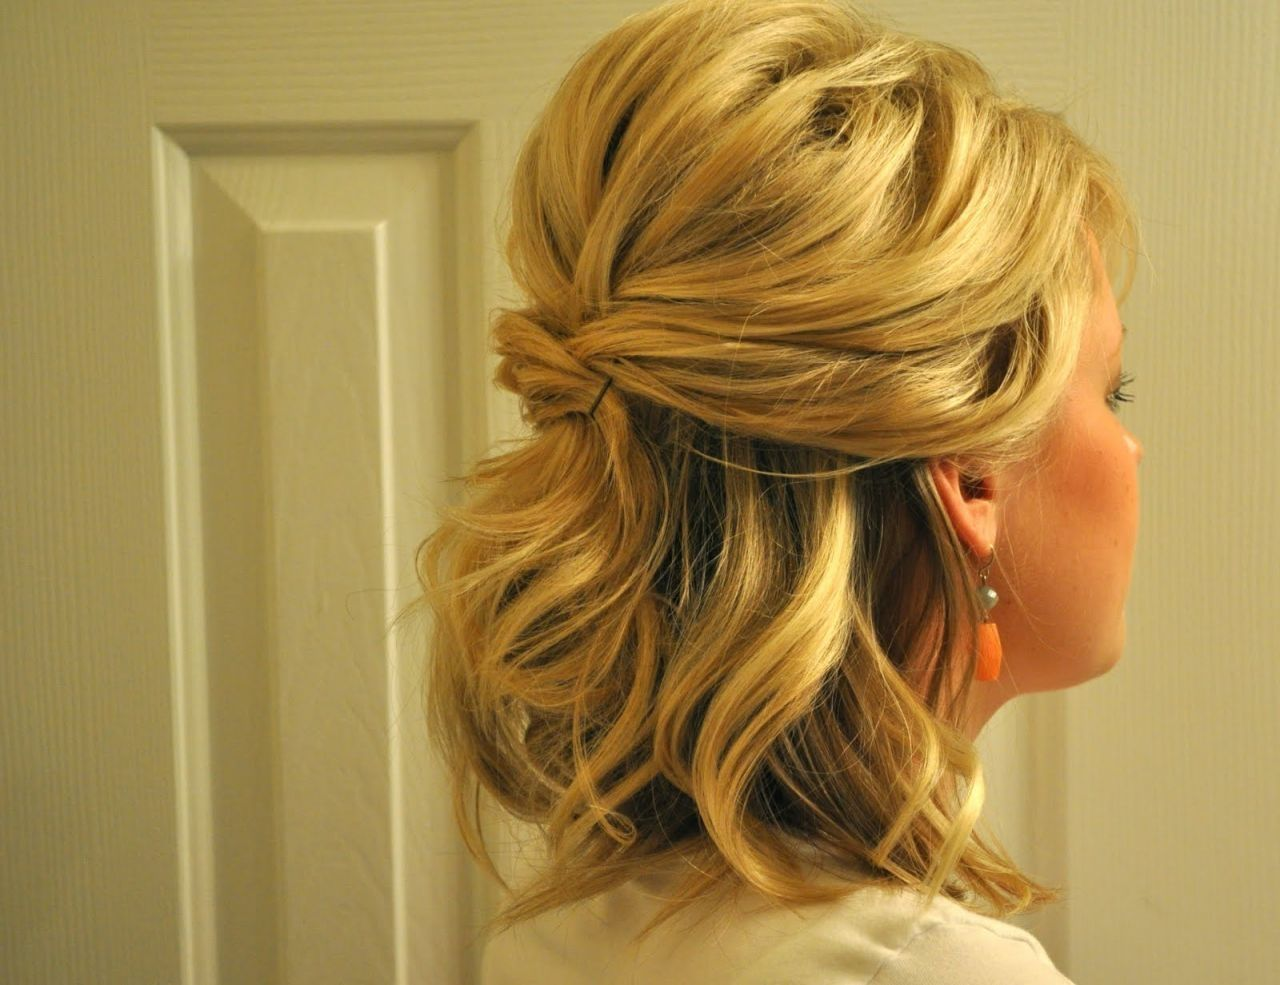 Updos For Medium Hair Half Up Half Down Half Up Half Down Wedding Hairstyles For Medium Length Hair Ph Hair Styles Short Hair Lengths Medium Length Hair Styles